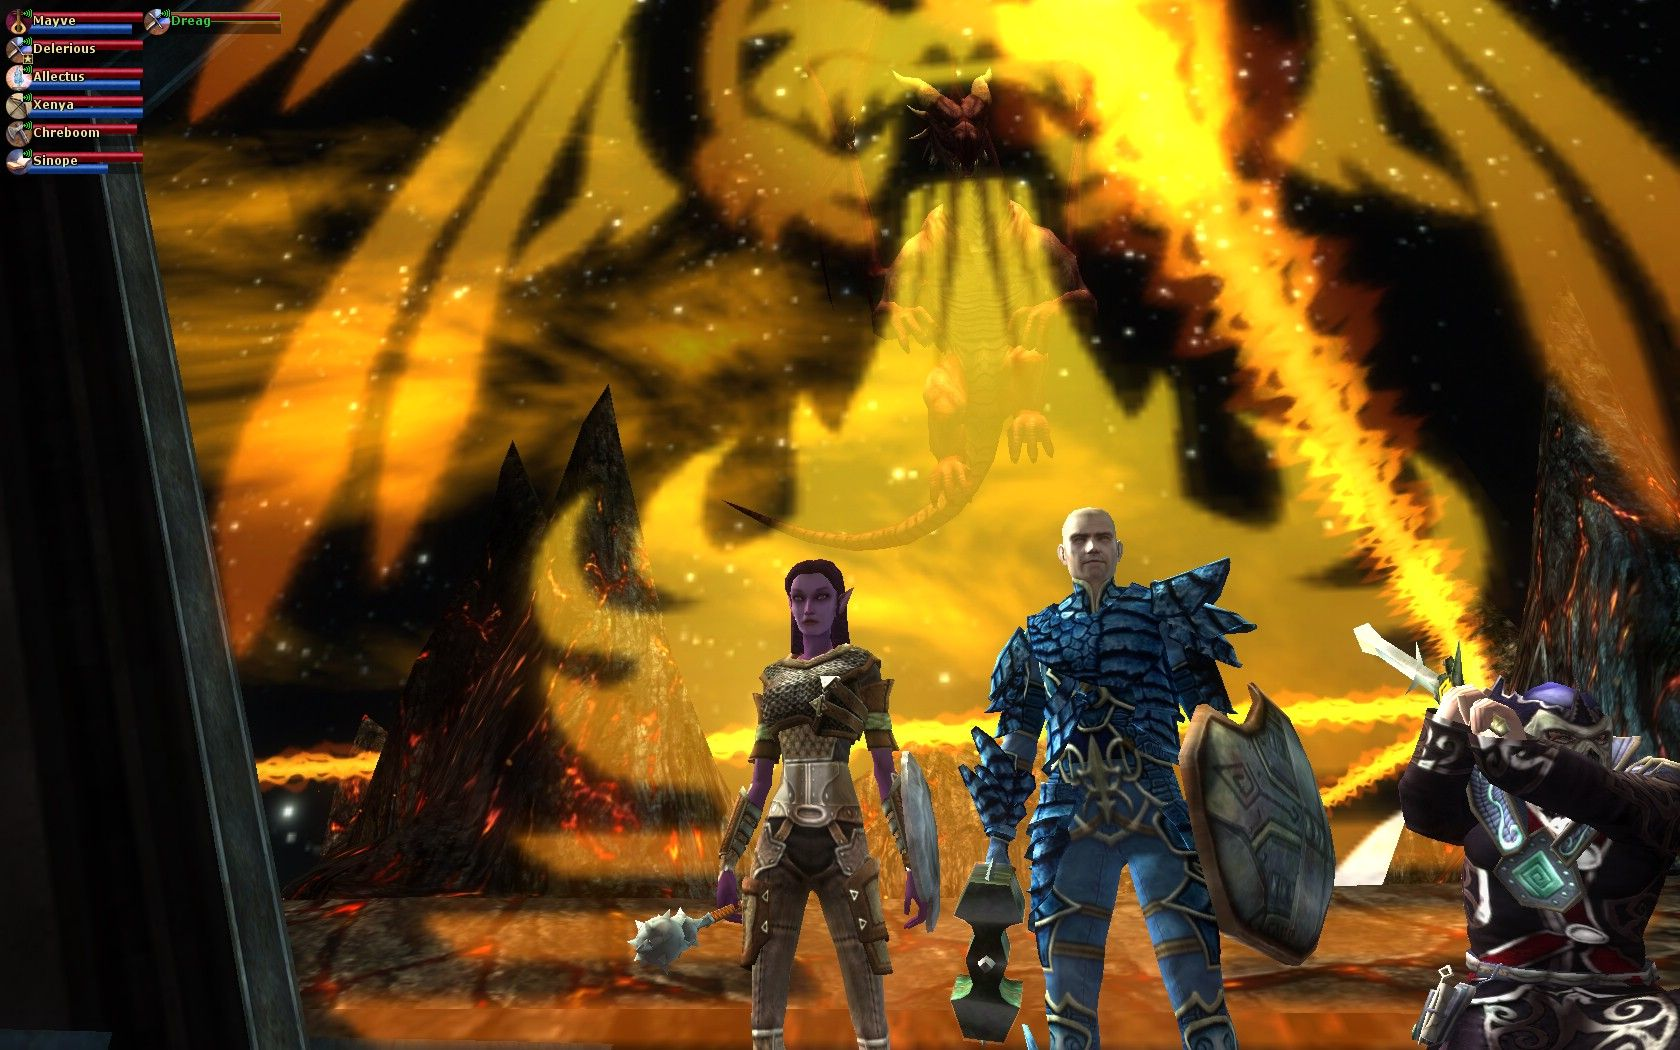 Maeve, Allectus, and Chreb ready to face Velah, the Red Dragon